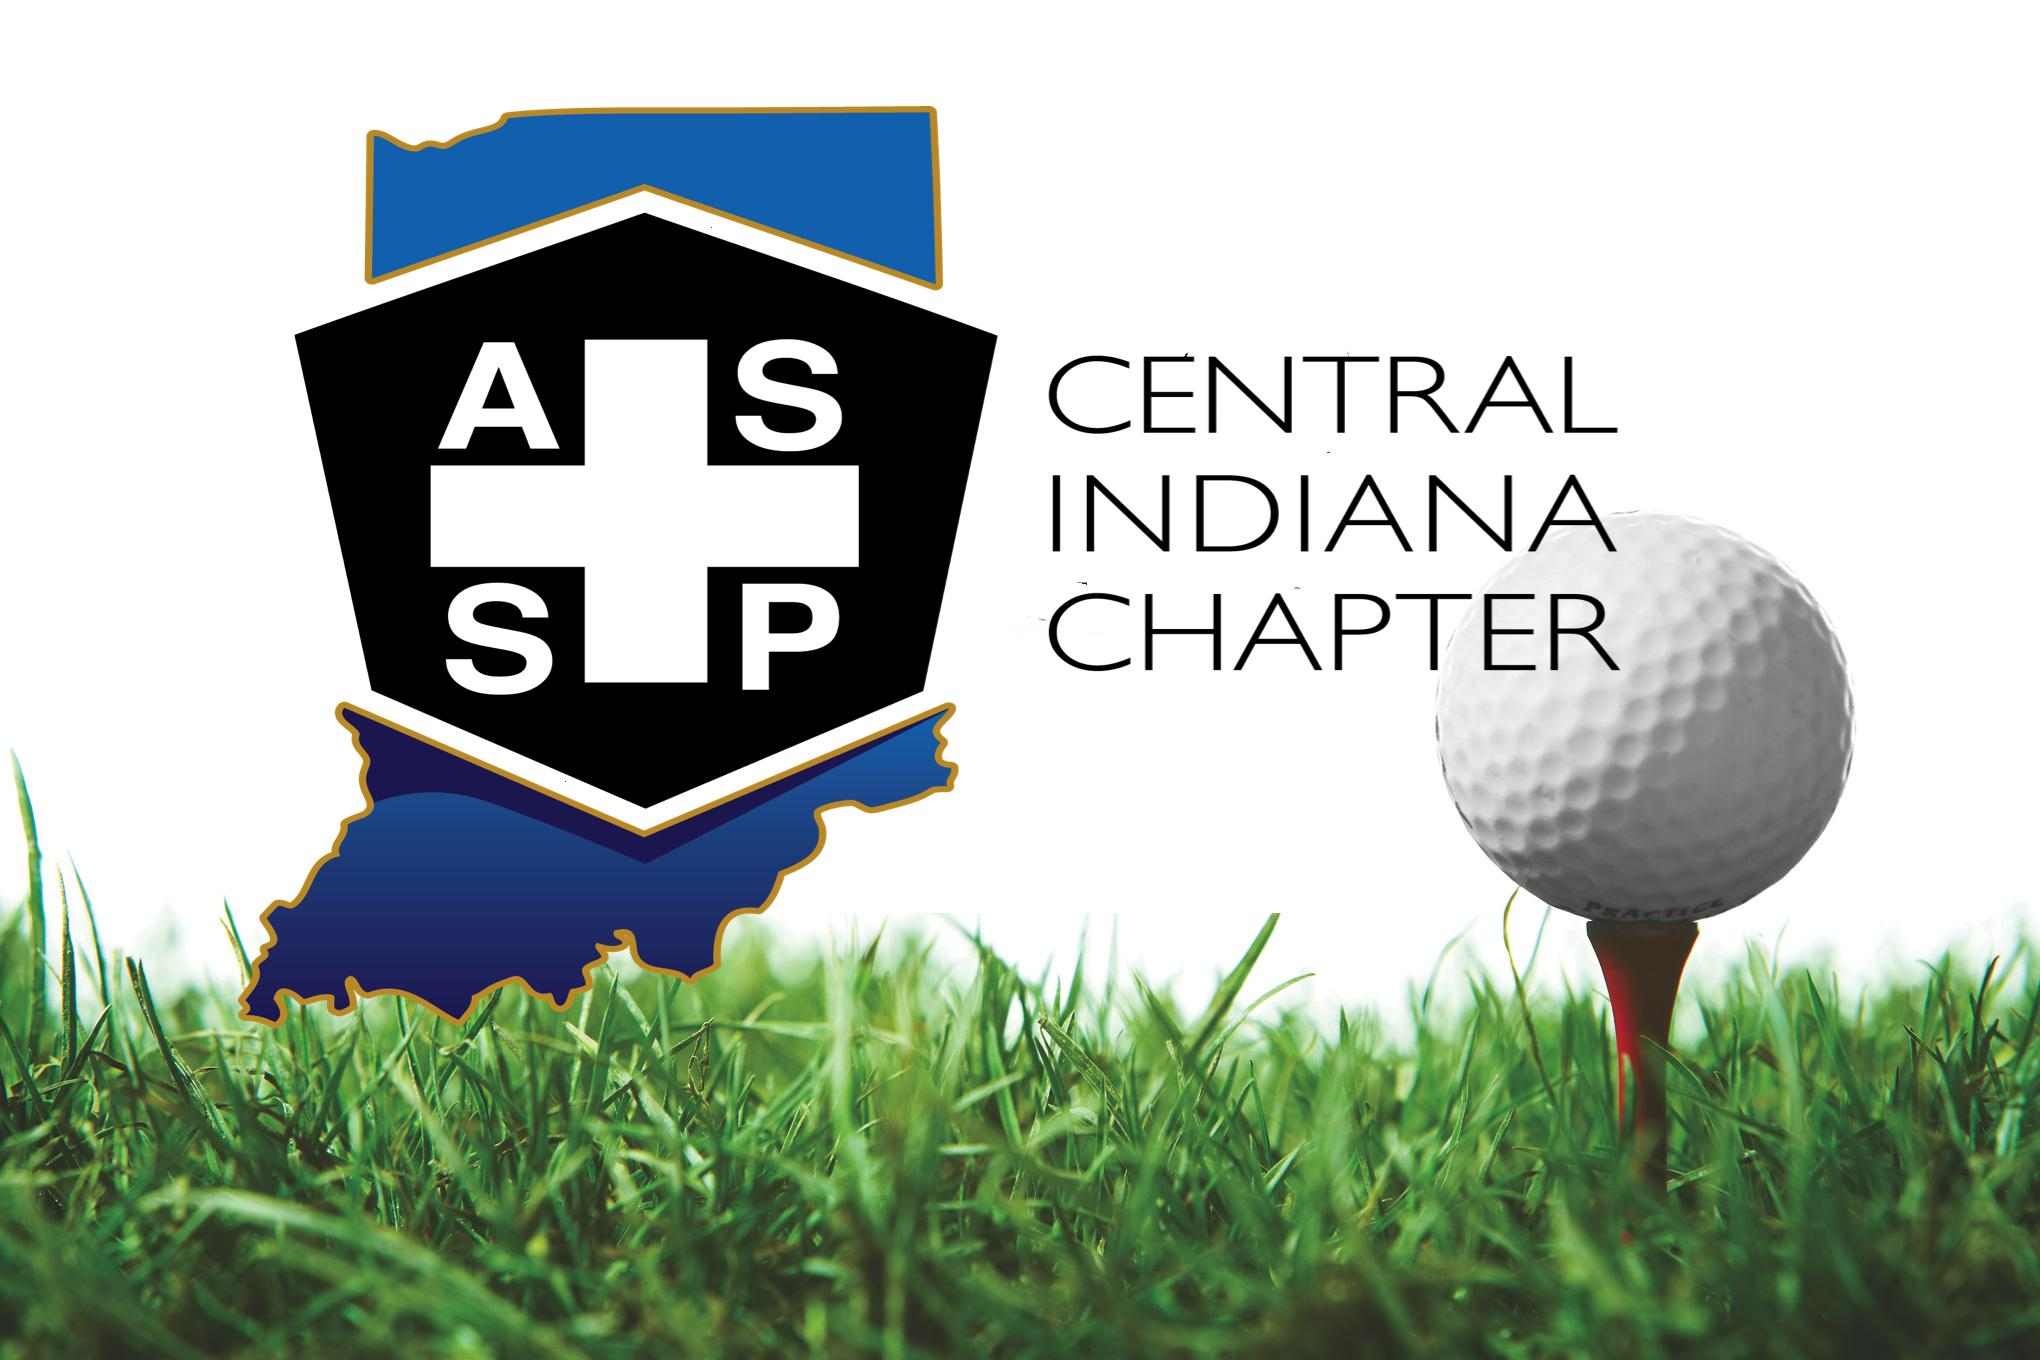 8th Annual Scholarship Golf Outing - Future Safety Leaders (August 7, 2020)